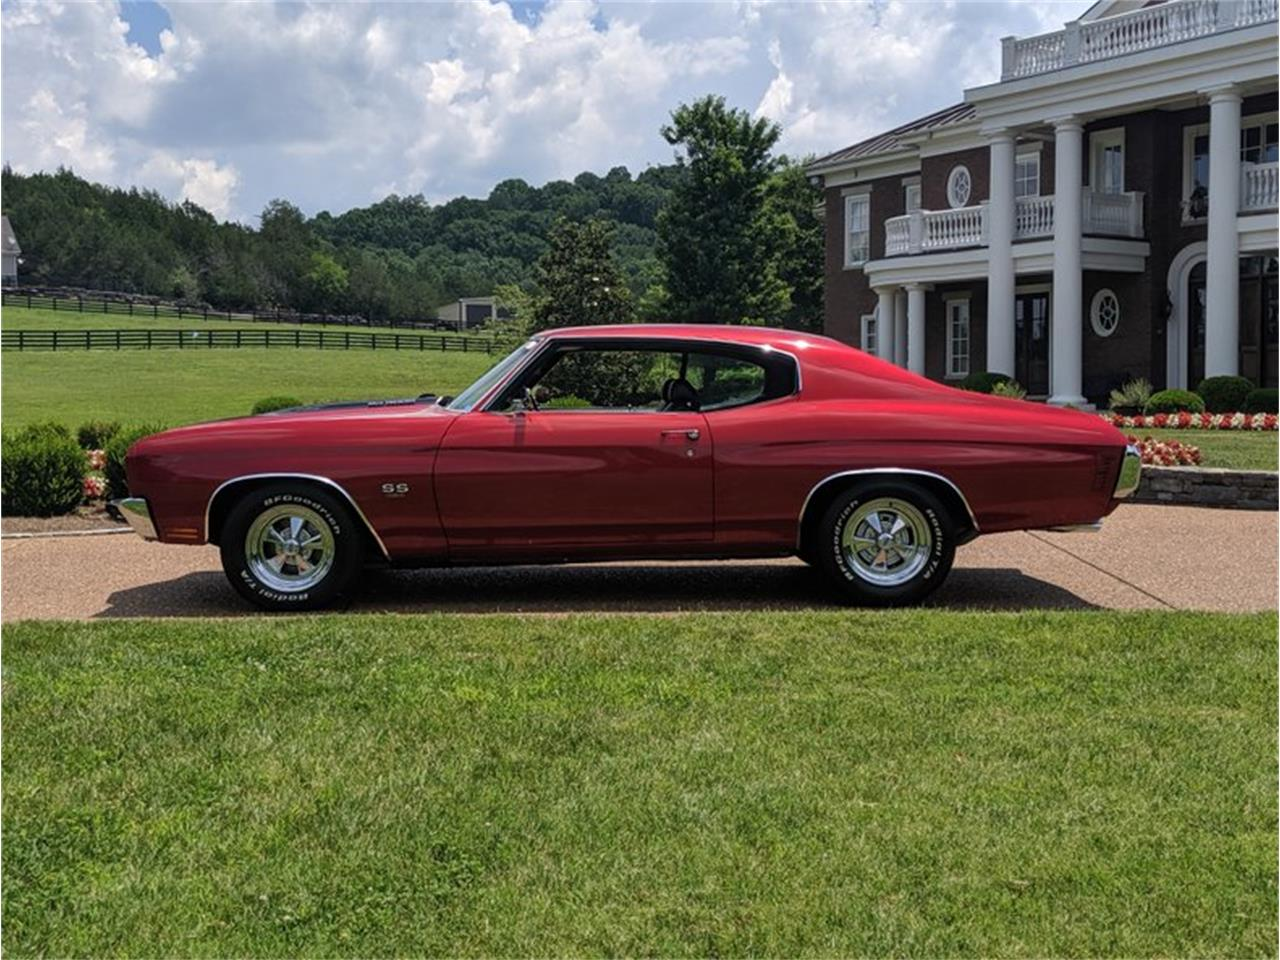 1970 Chevrolet Chevelle (CC-1250542) for sale in Greensboro, North Carolina